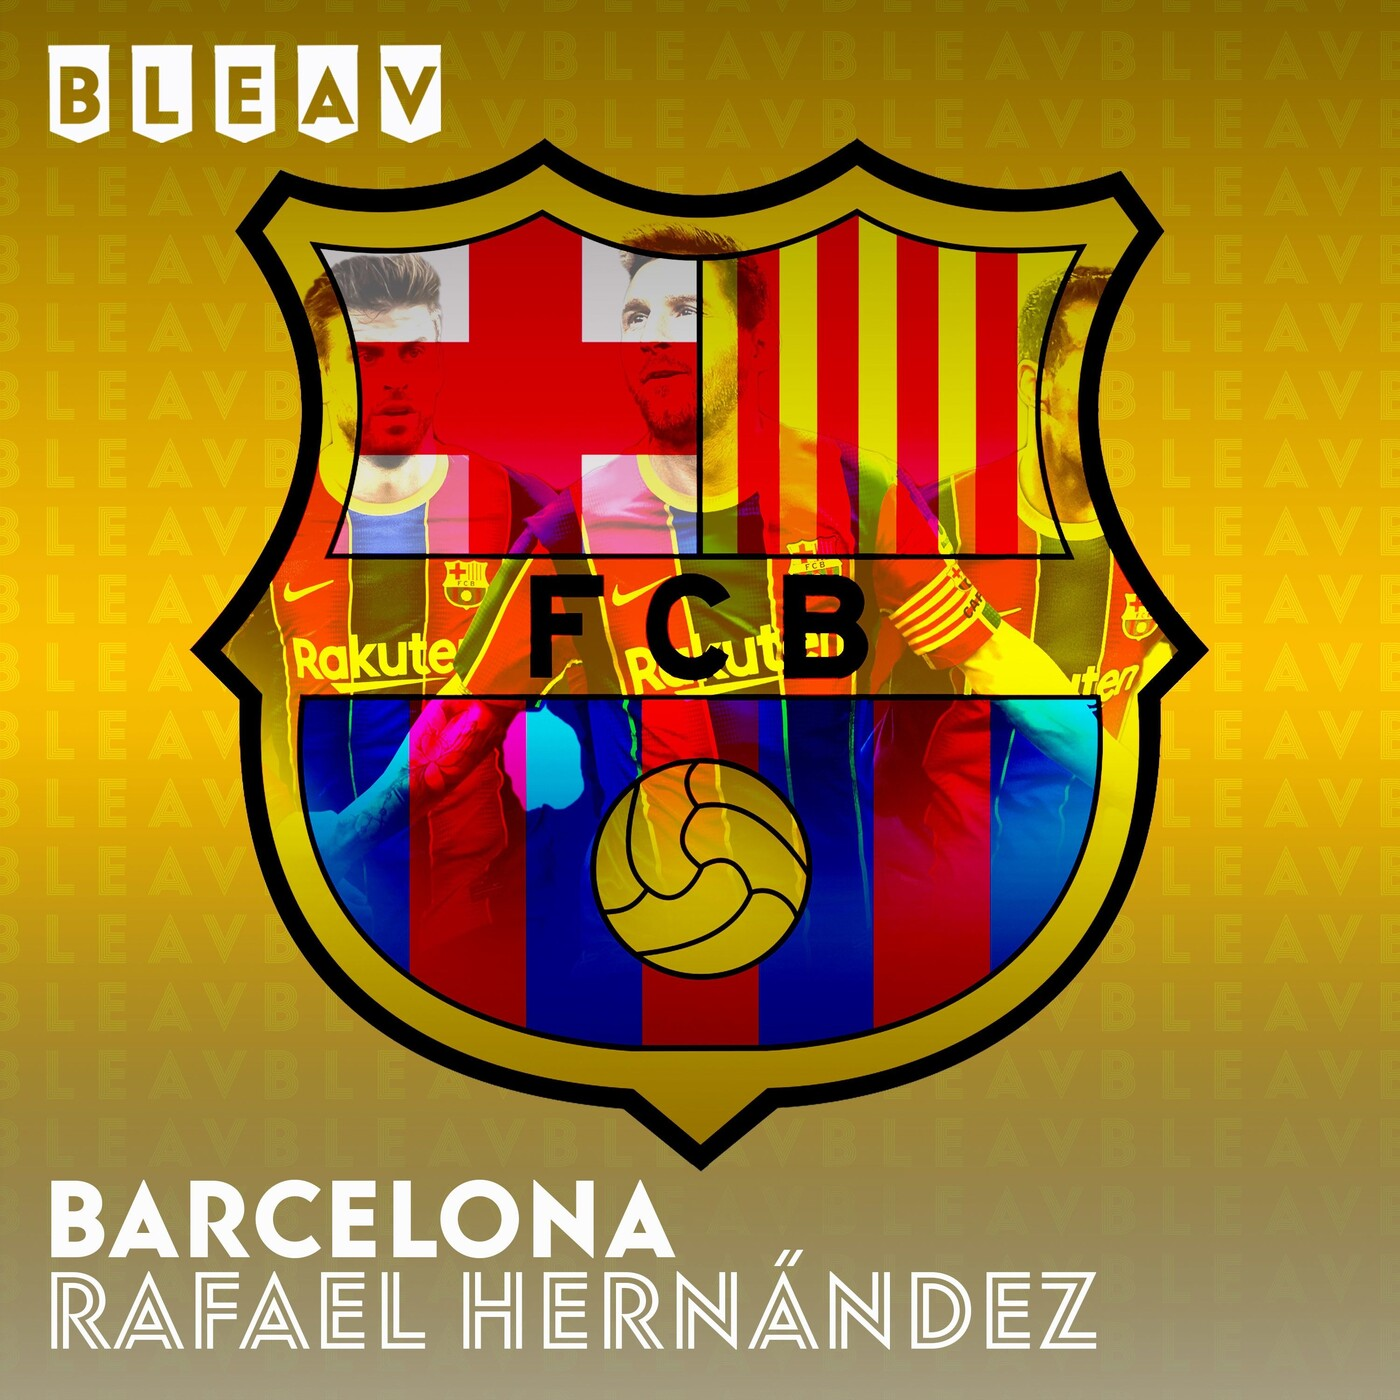 S01E08 - The Risks Of Bartomeu Selling Barcelona's Future to Goldman Sachs